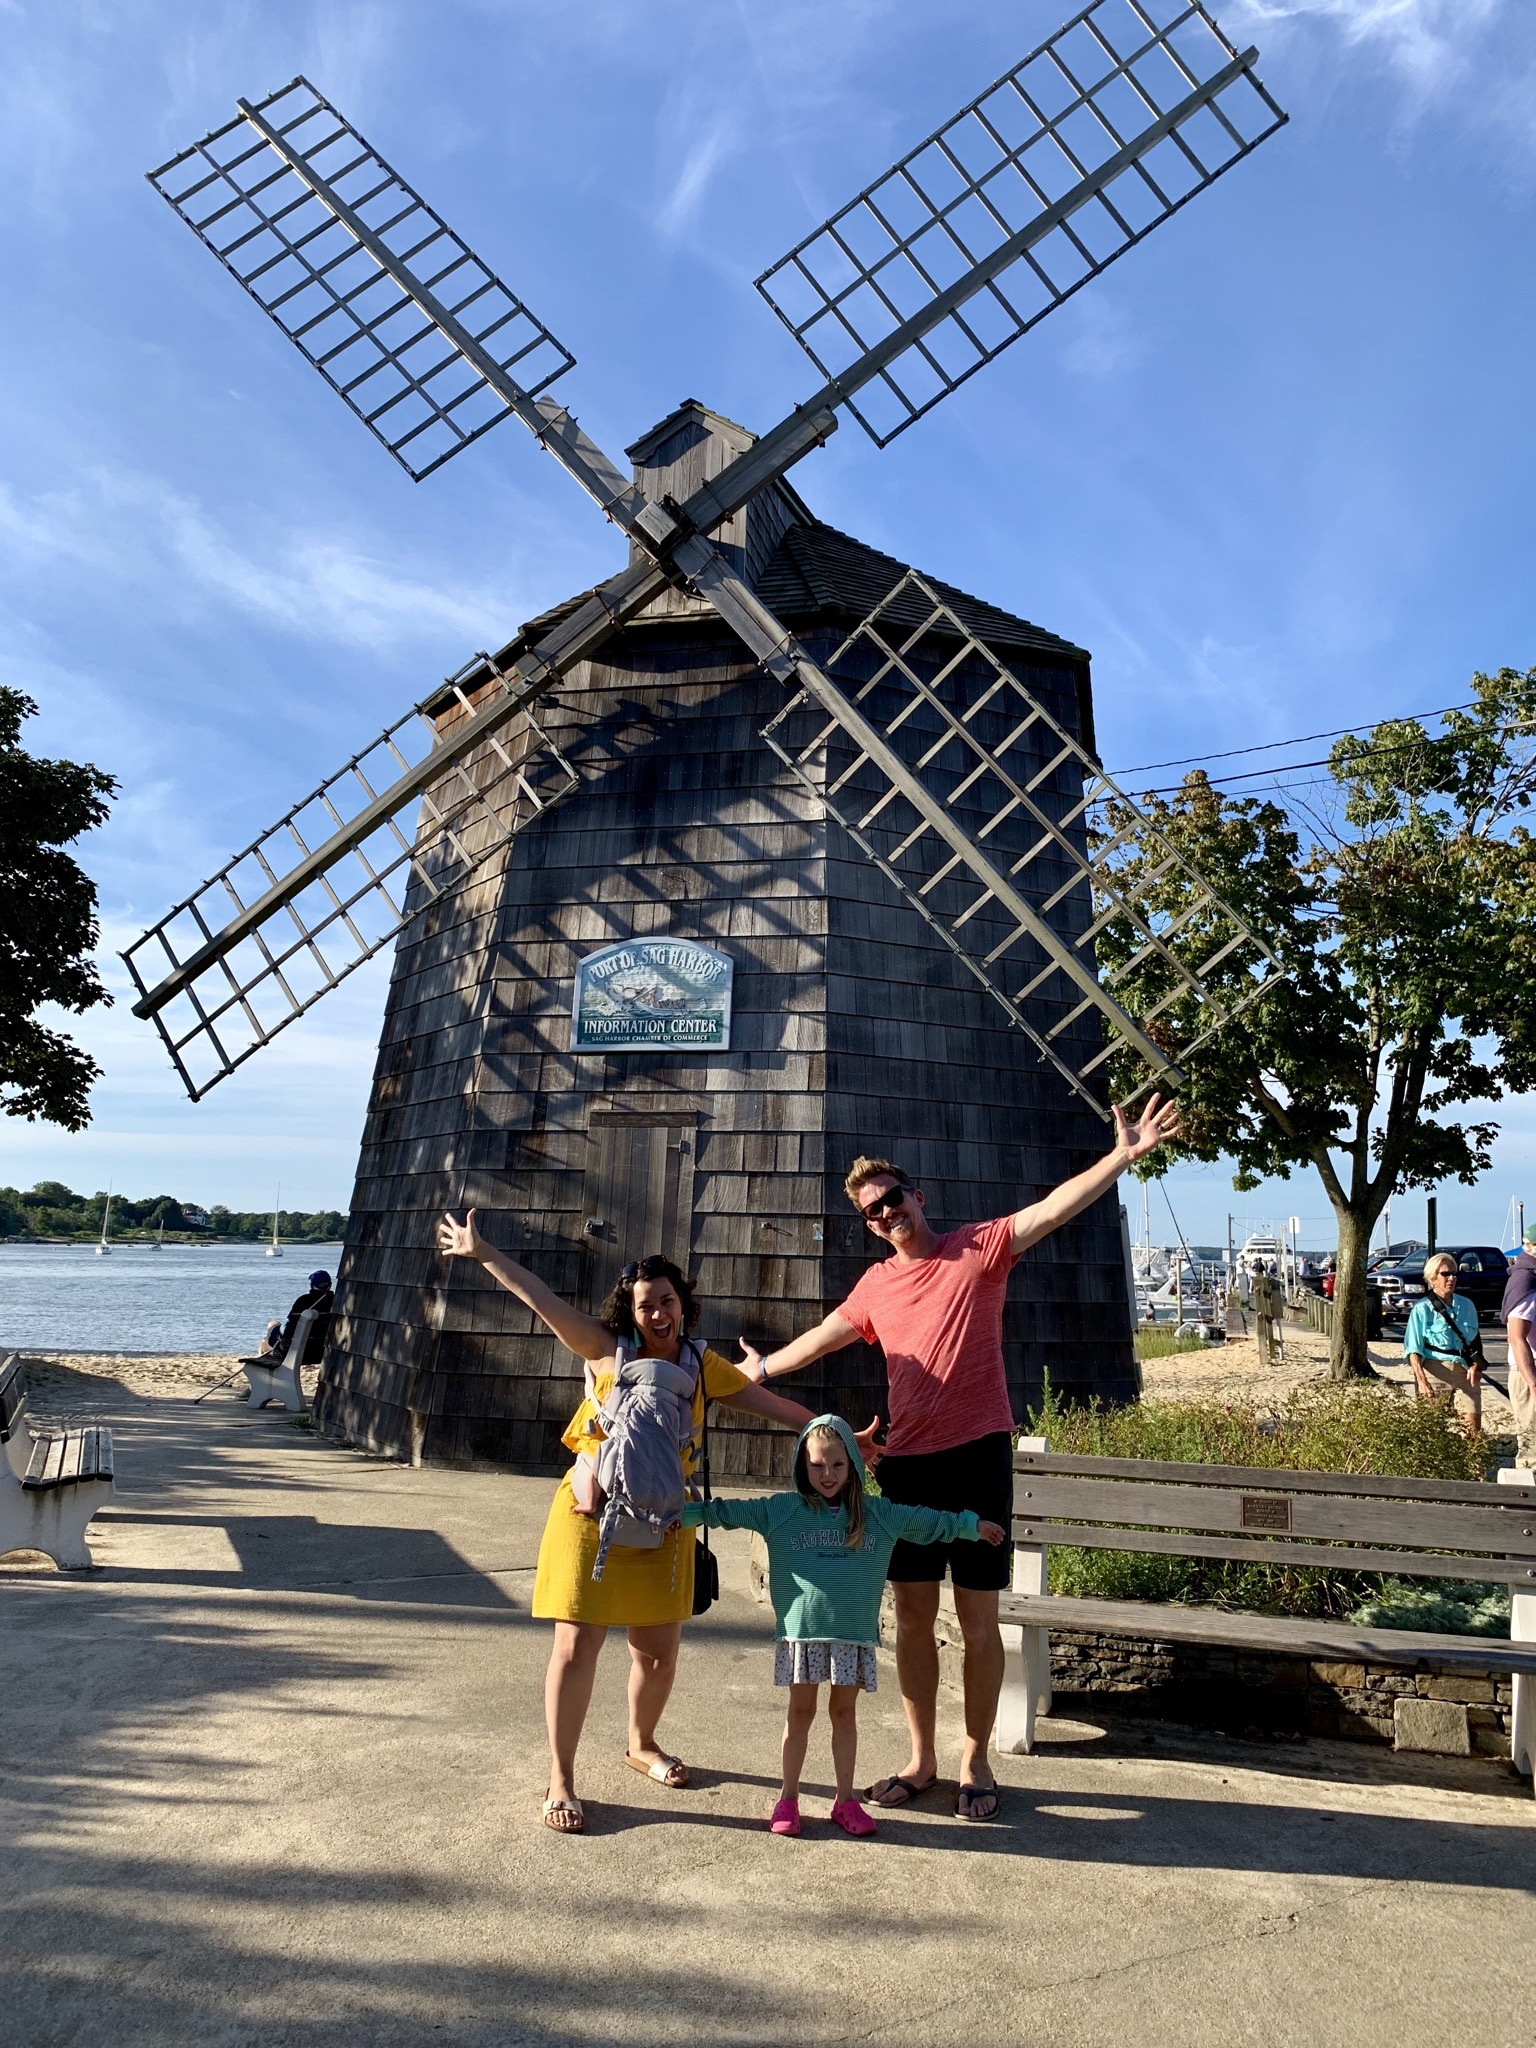 Making silly faces in front of the Sag Harbor windmill